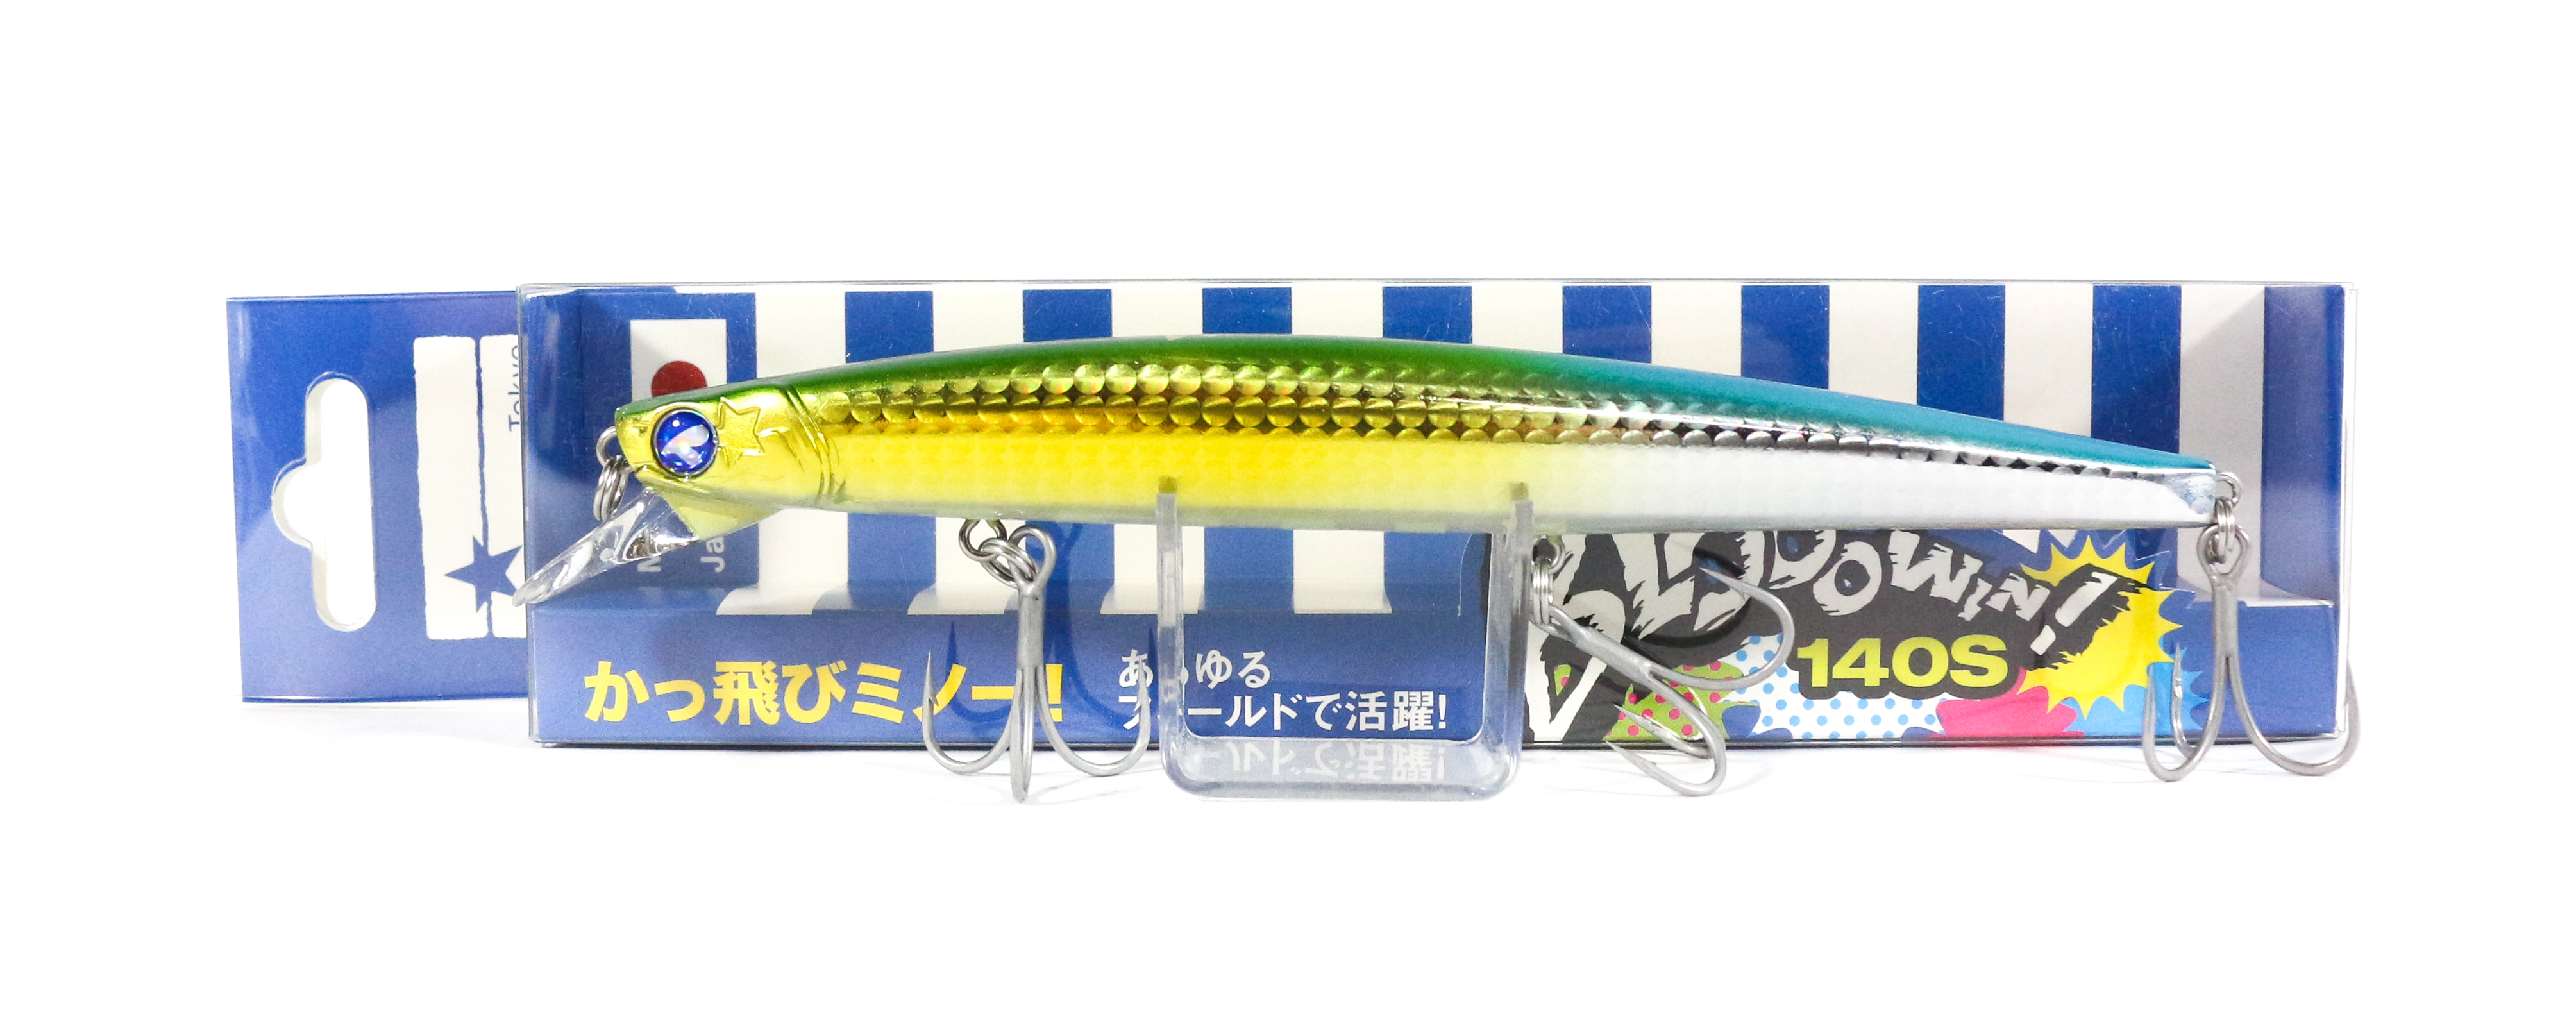 Blue Blue Blooowin 140S 23 grams Sinking Lure 10 (0924)